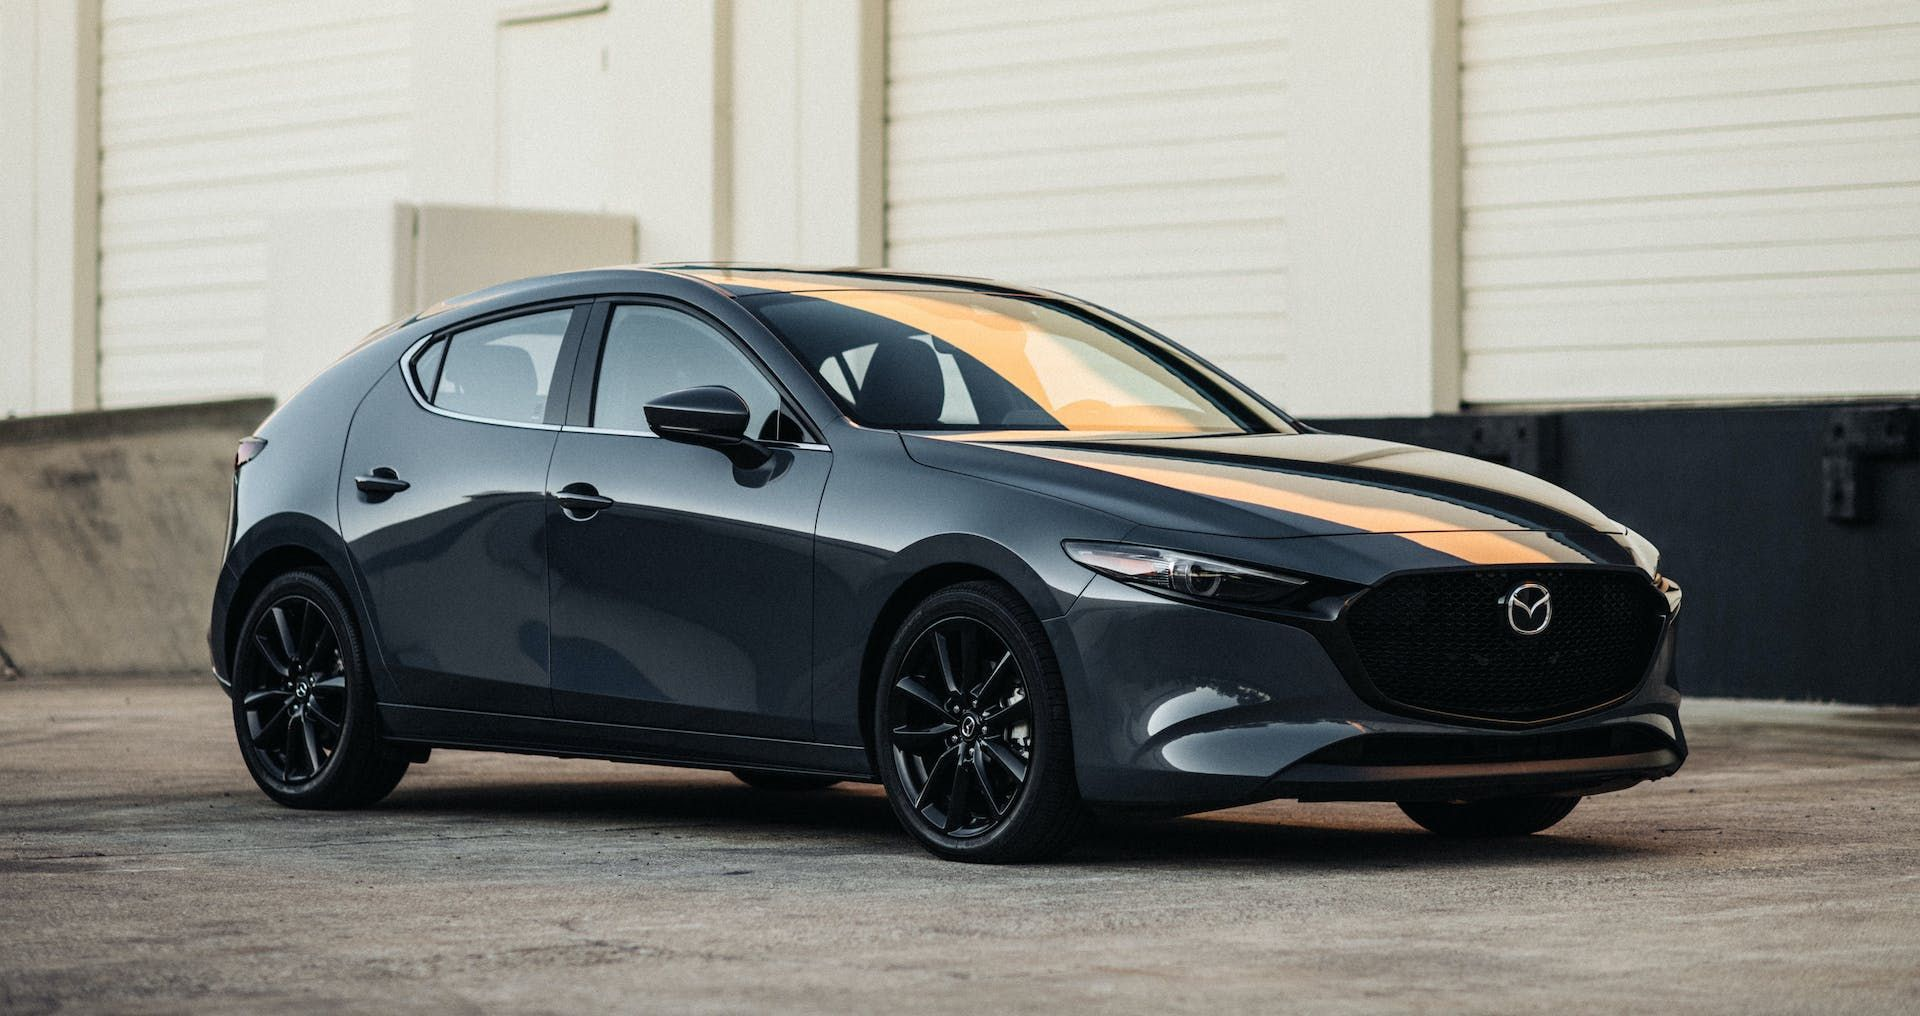 Hear The 2021 Mazda3 Turbo Before We See It In July The Drive Mazda Hatchback Mazda 3 Hatchback Mazda Cars